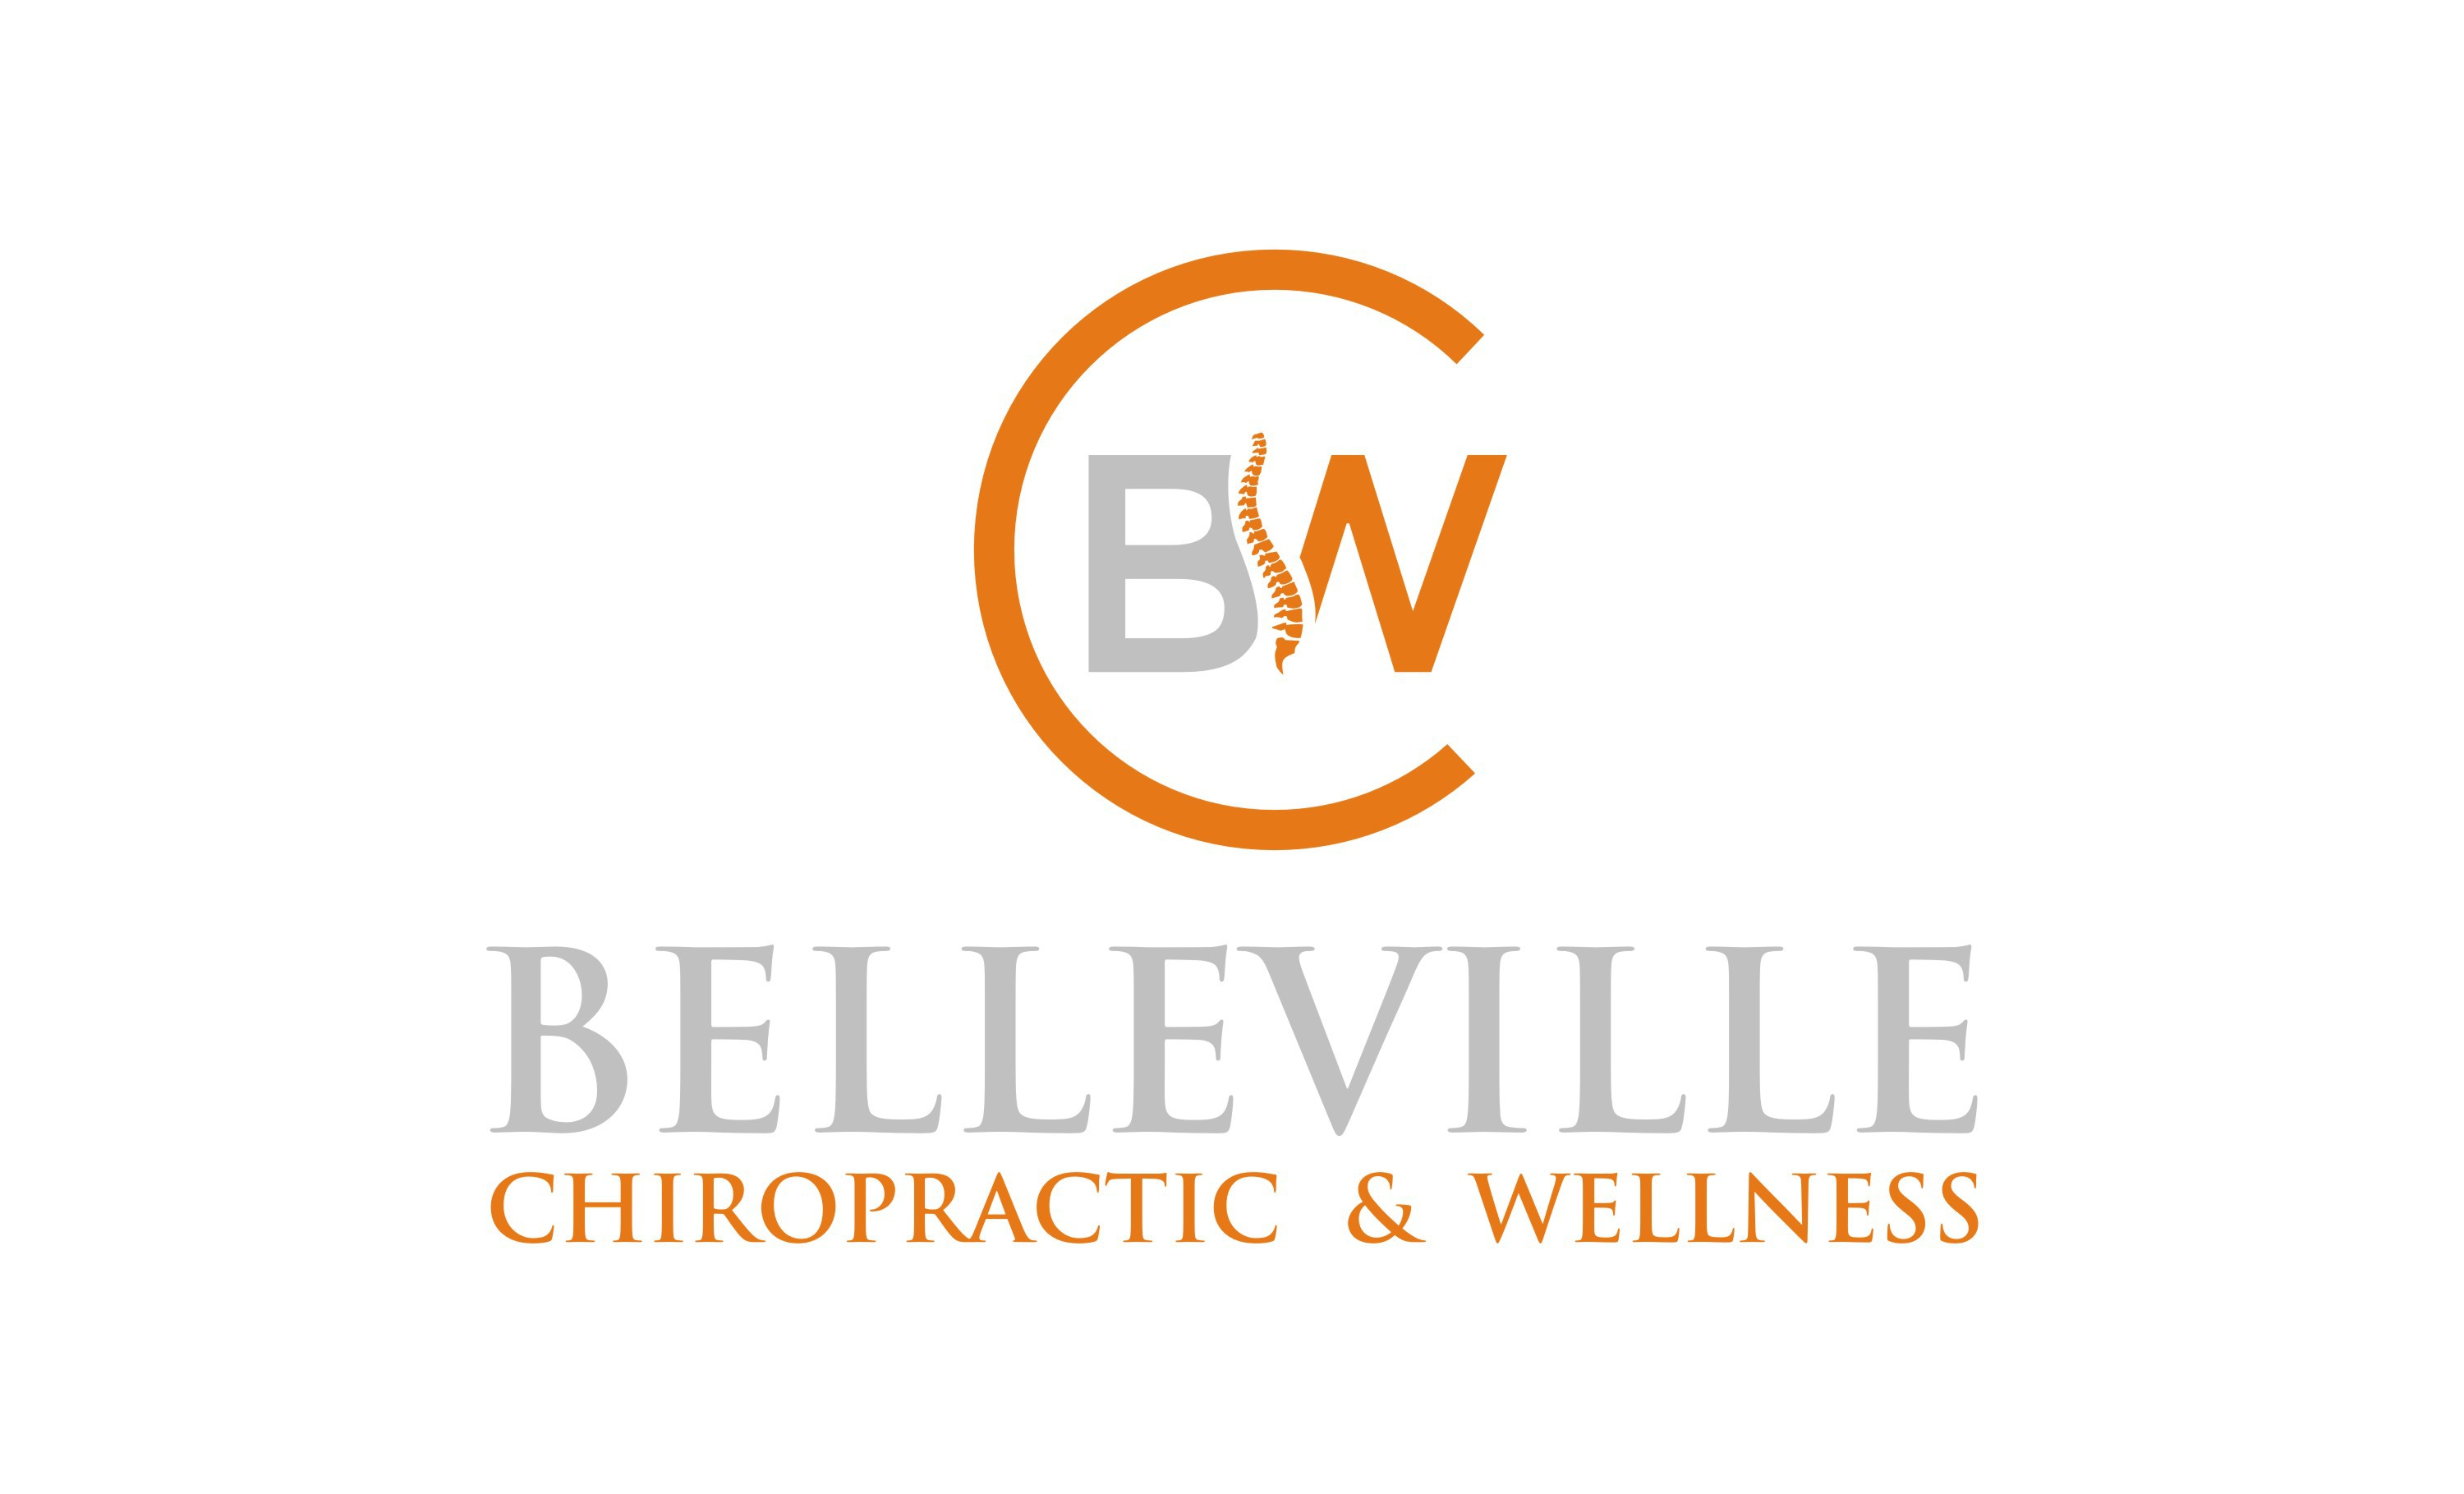 Rapidly growing Chiropractic Wellness clinic NEEDS powerful 1st ever logo/brand